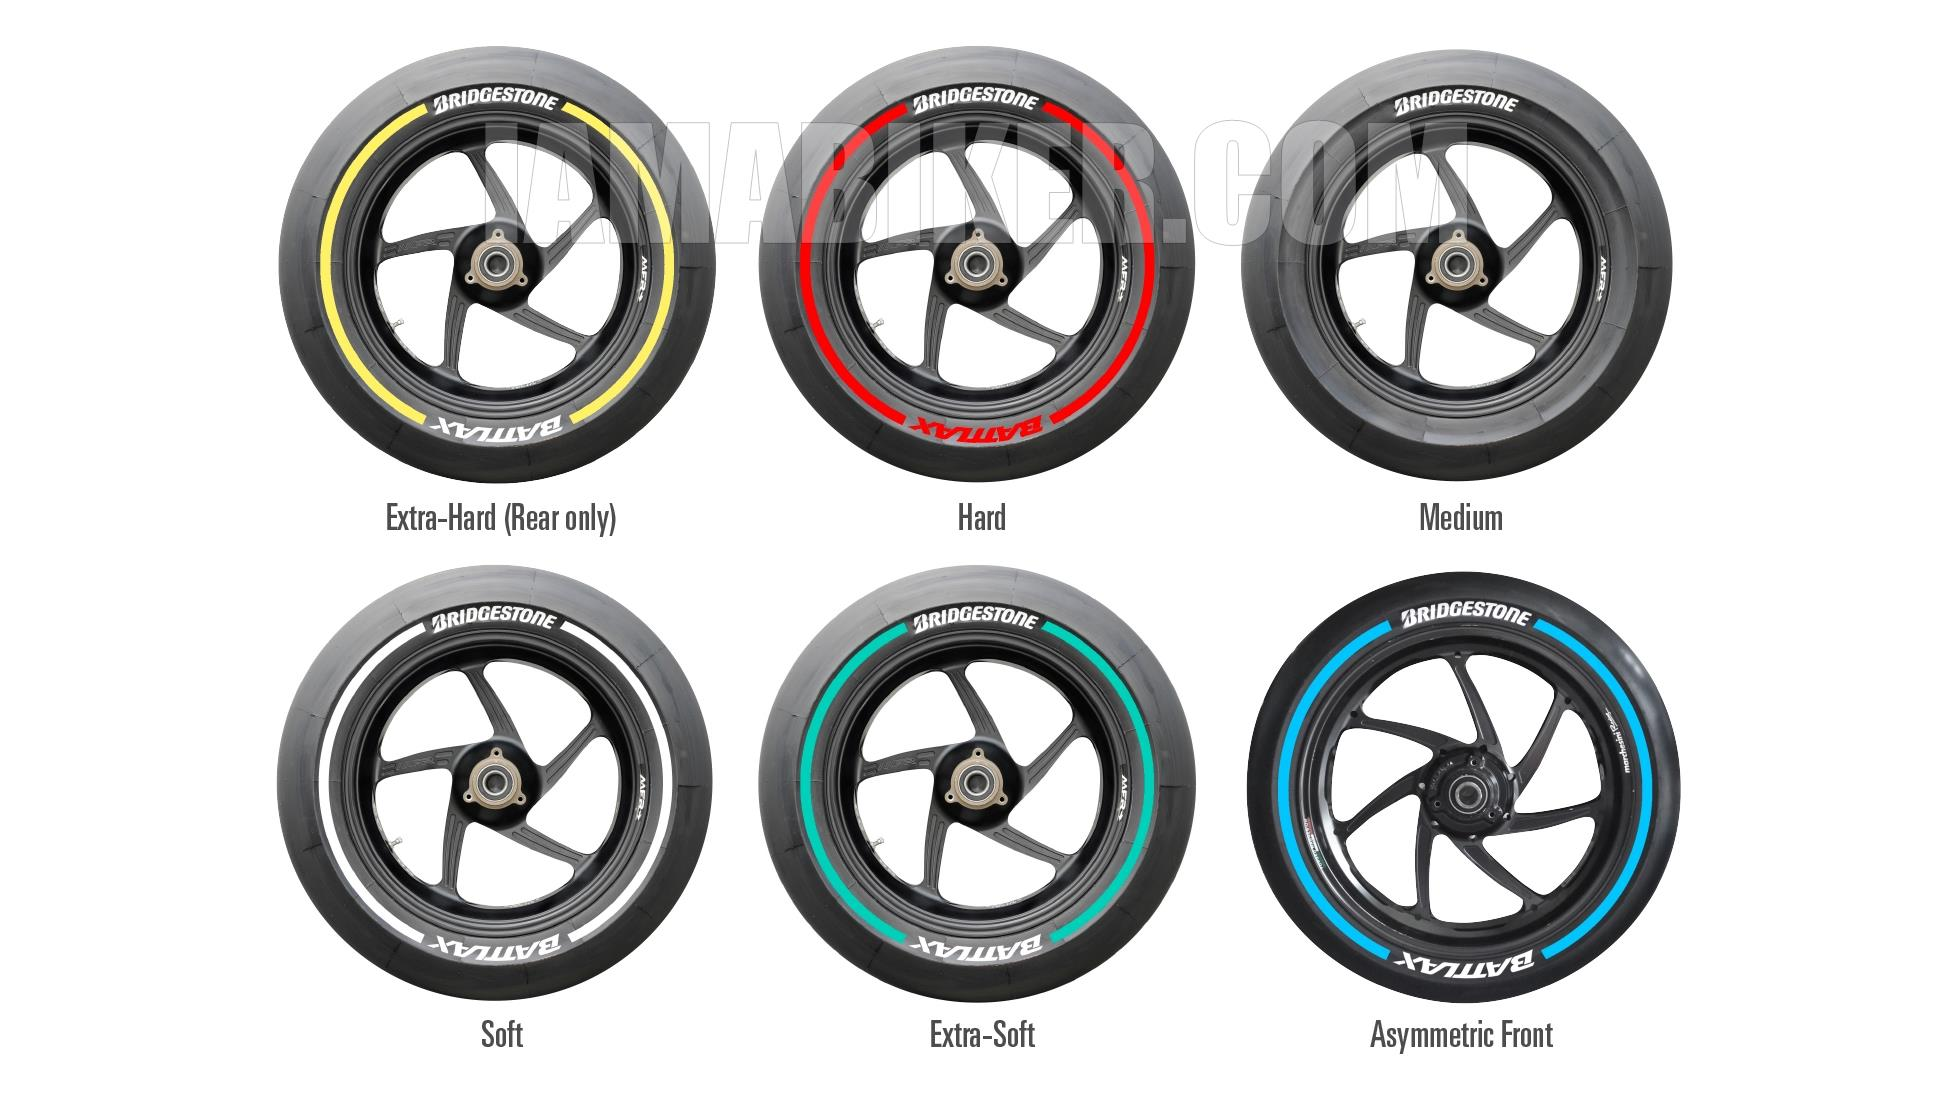 Bridgestone slick tyre colour marking meaining 2015 MotoGP season